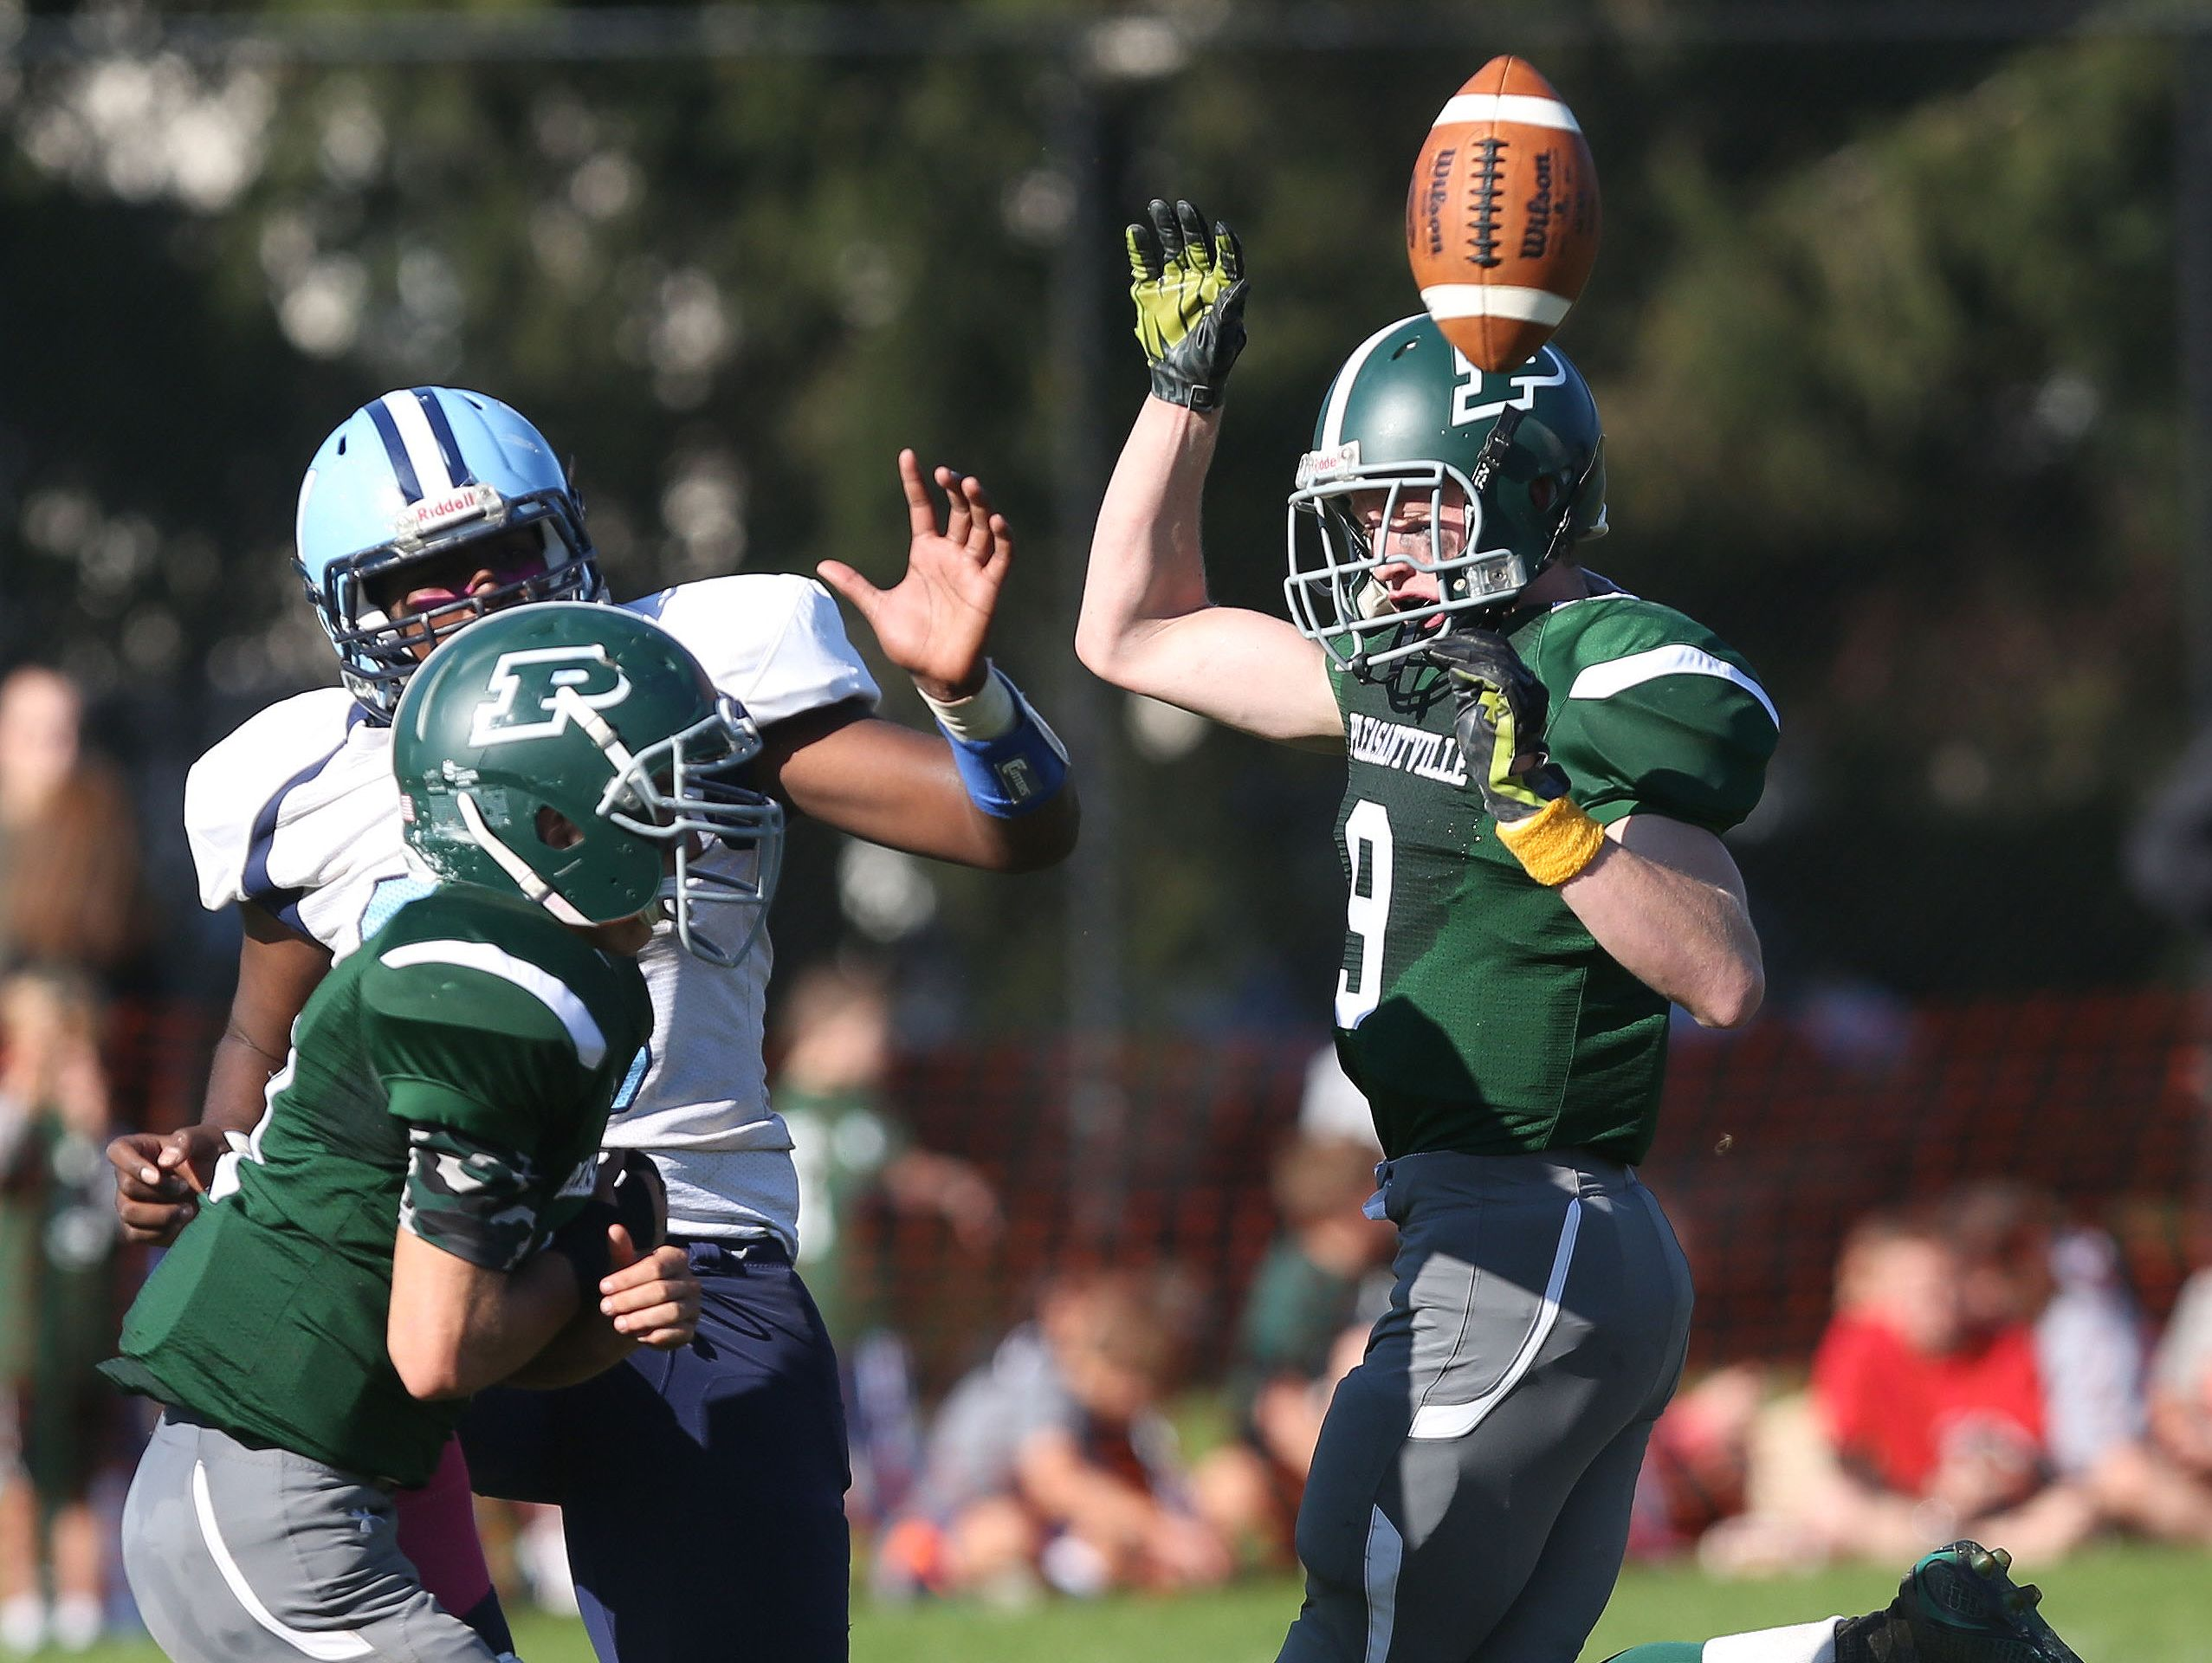 Pleasantville's Jake Farrelly (9) and Tim Stelzl (10) block a punt by Westlake's Camron Amerson (6) during football action at Parkway Field in Pleasantville Oct. 15, 2016. Pleasantville won the game 38-35.